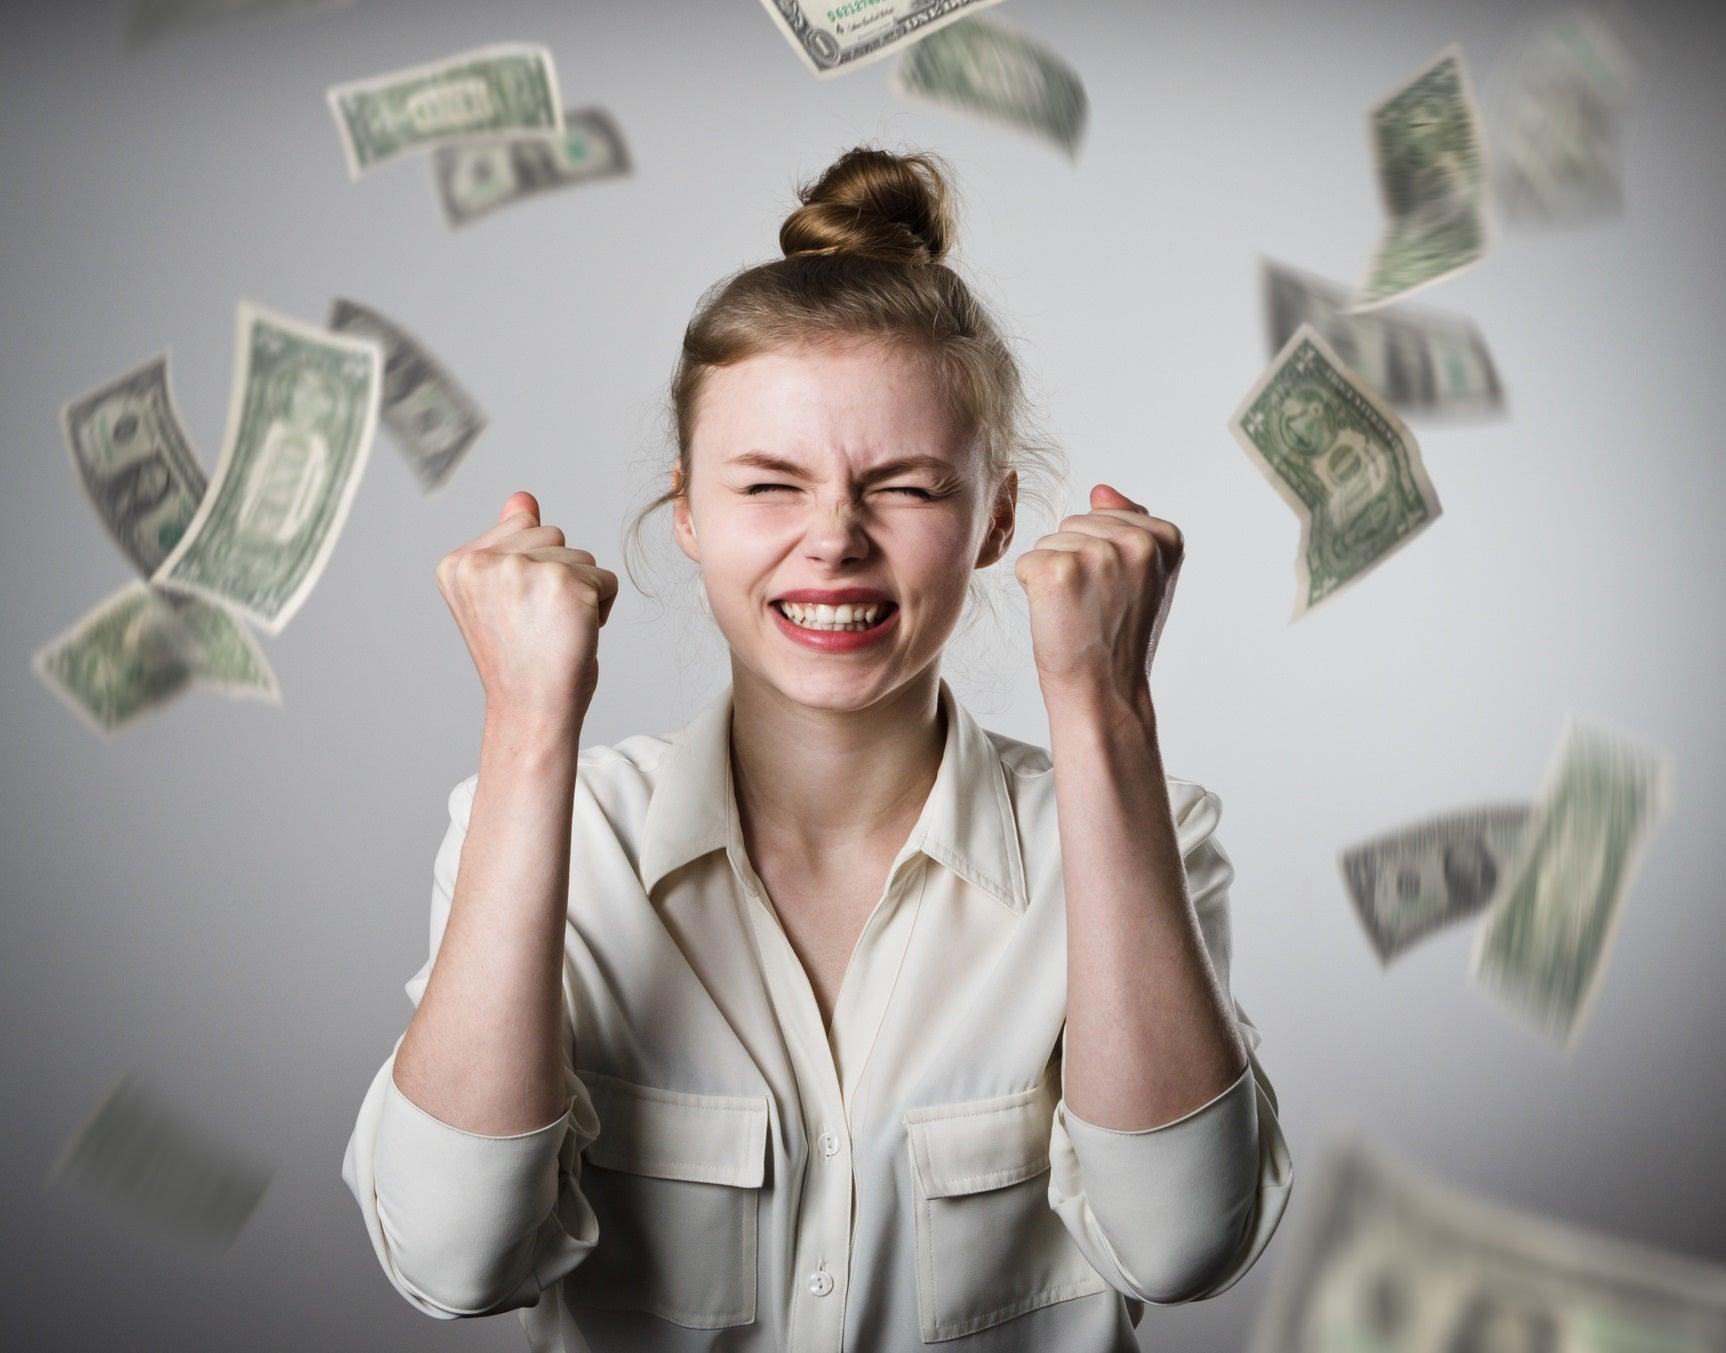 money-raining-on-woman-celebrating